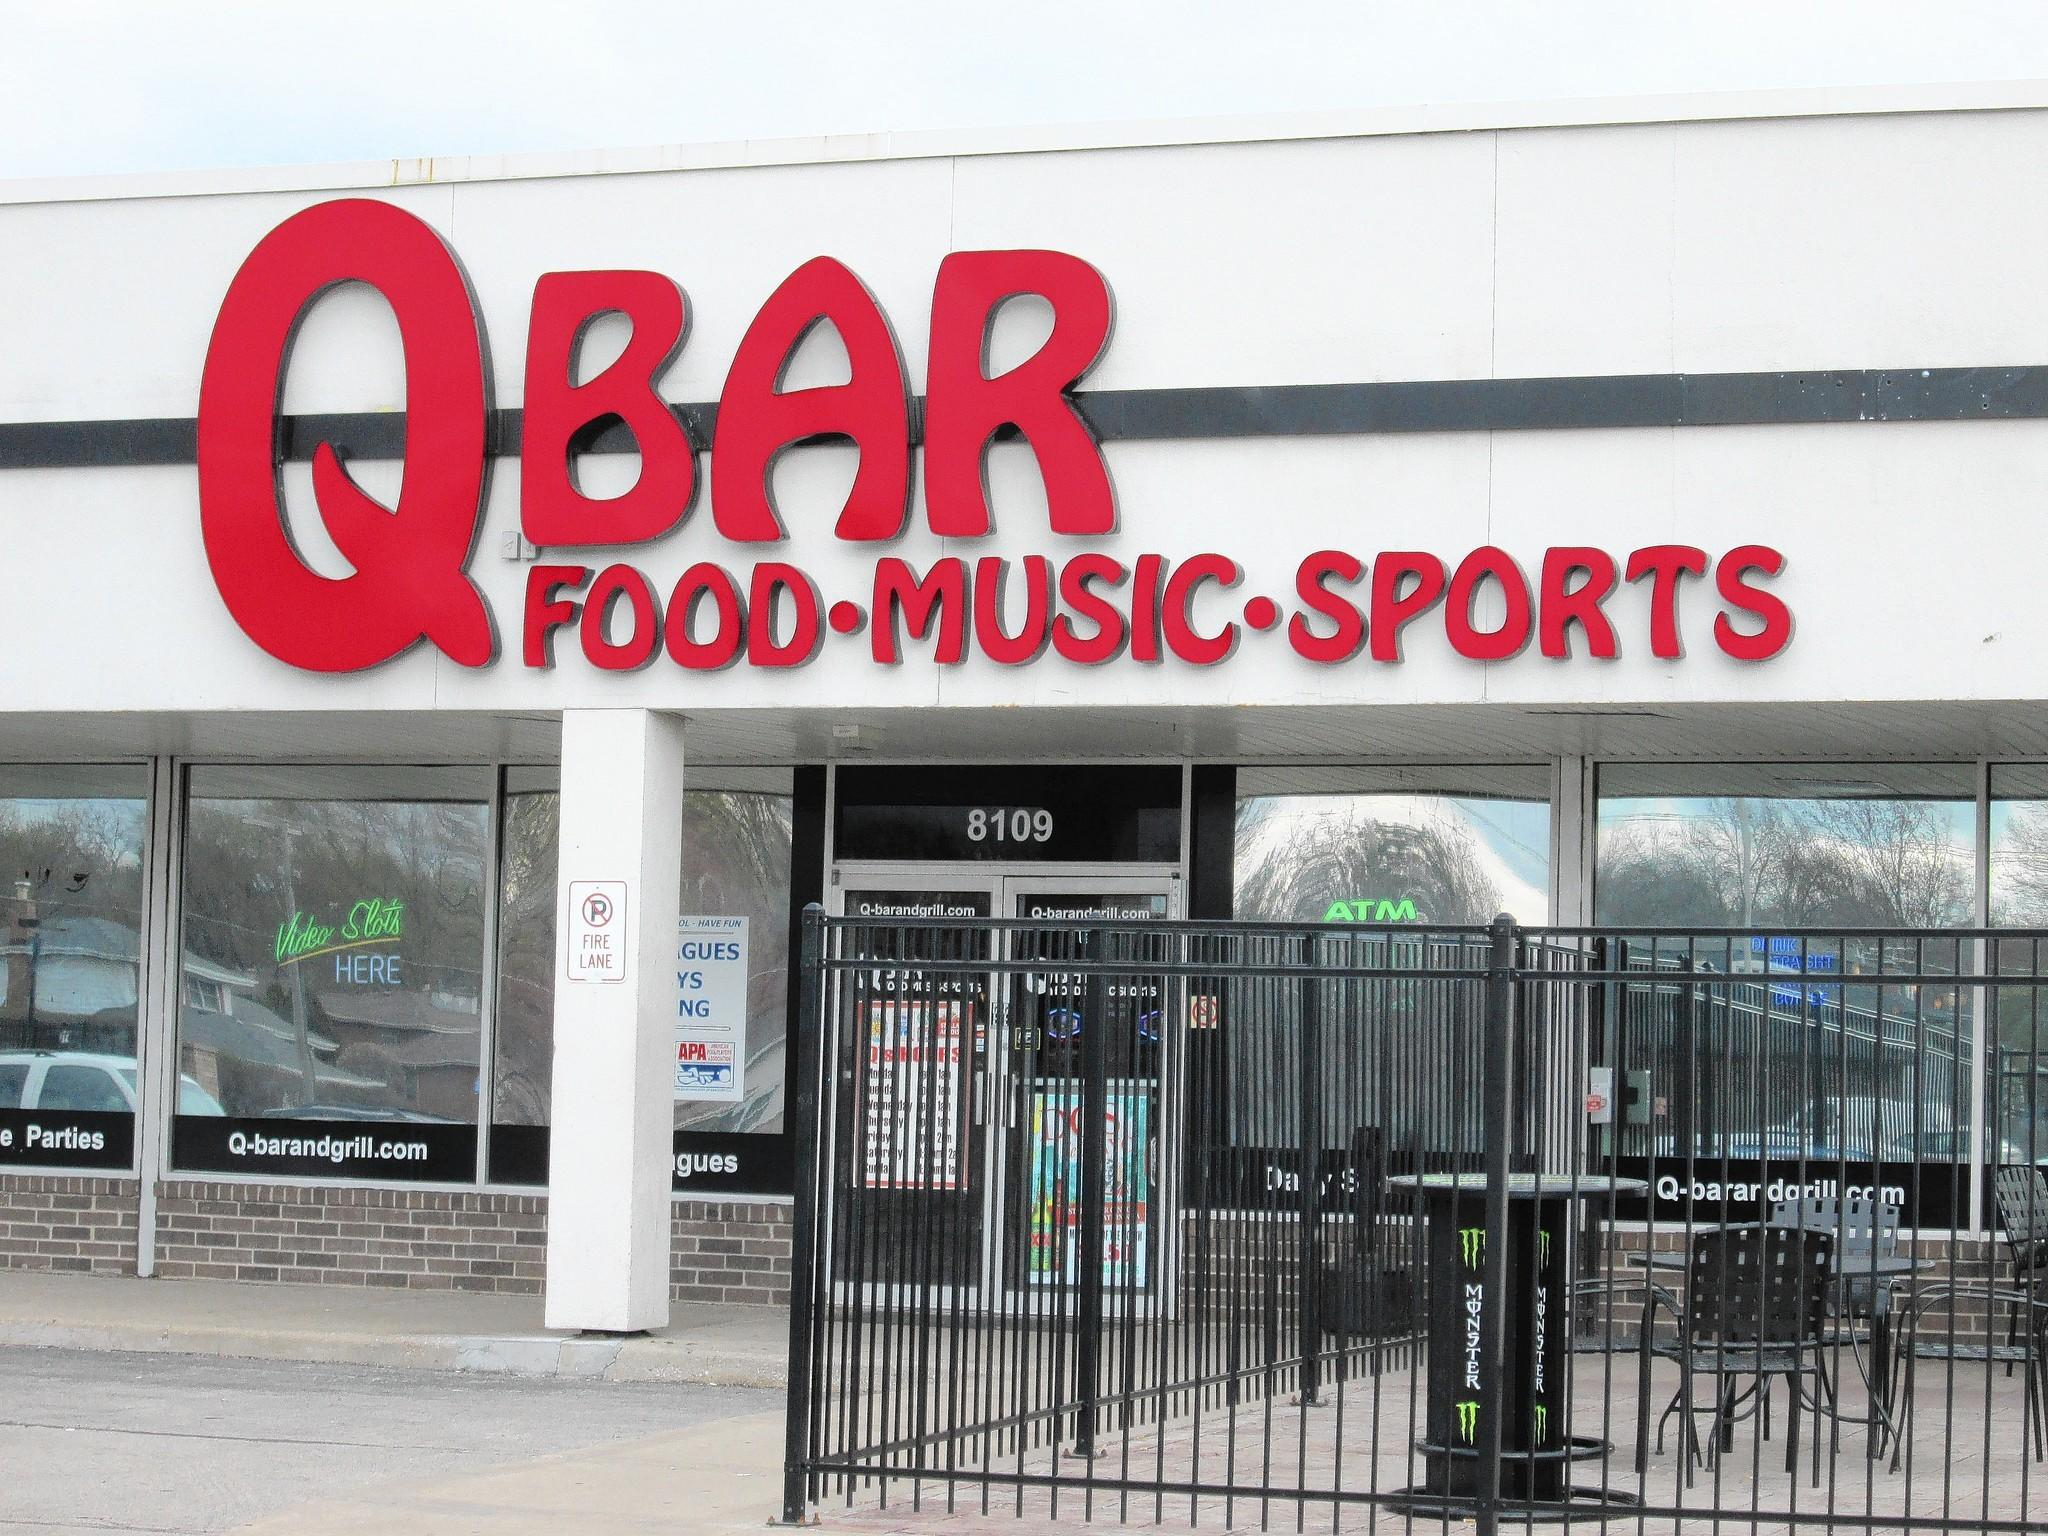 The QBar establishment in the nearby suburb of Darien offers video gambling.